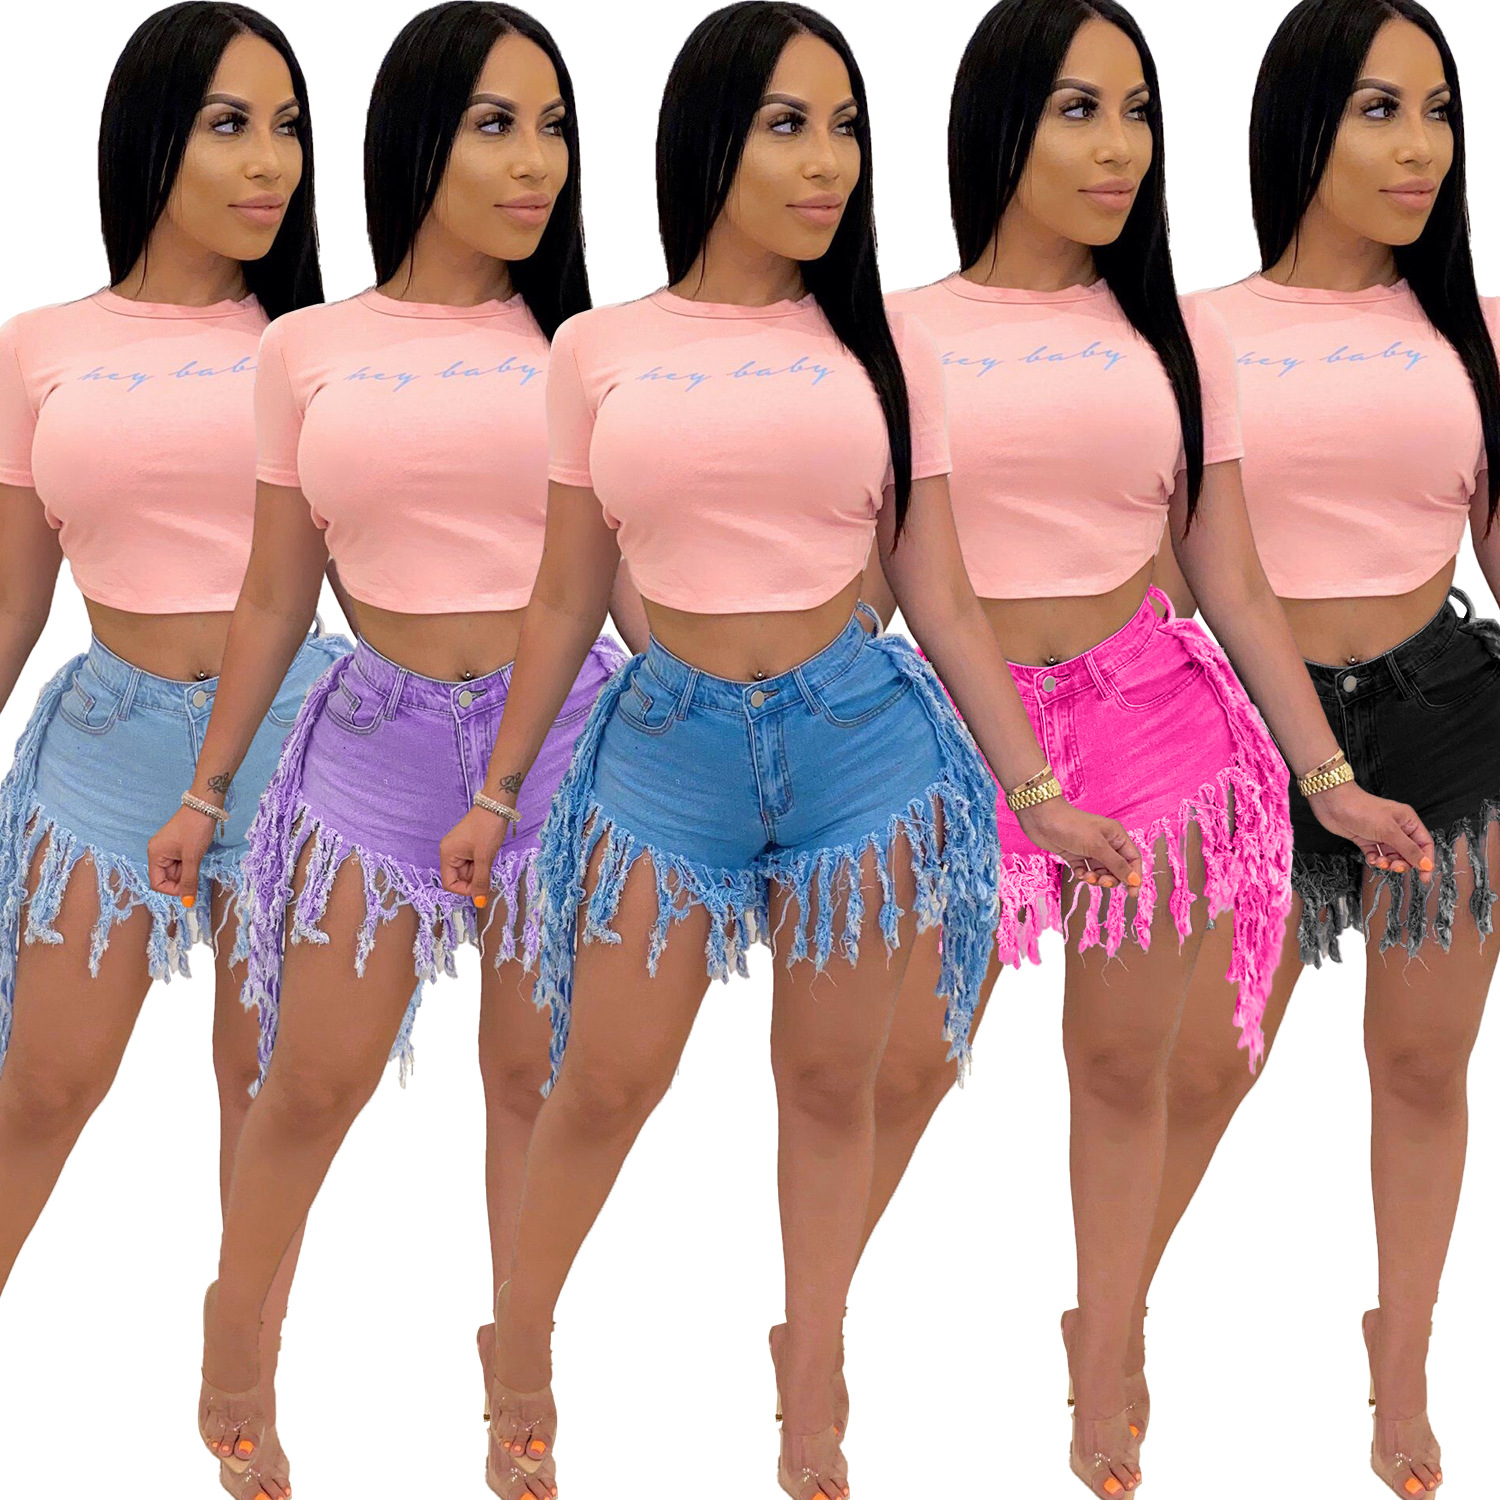 Retro worn jeans women's denim shorts Denim Hot pants